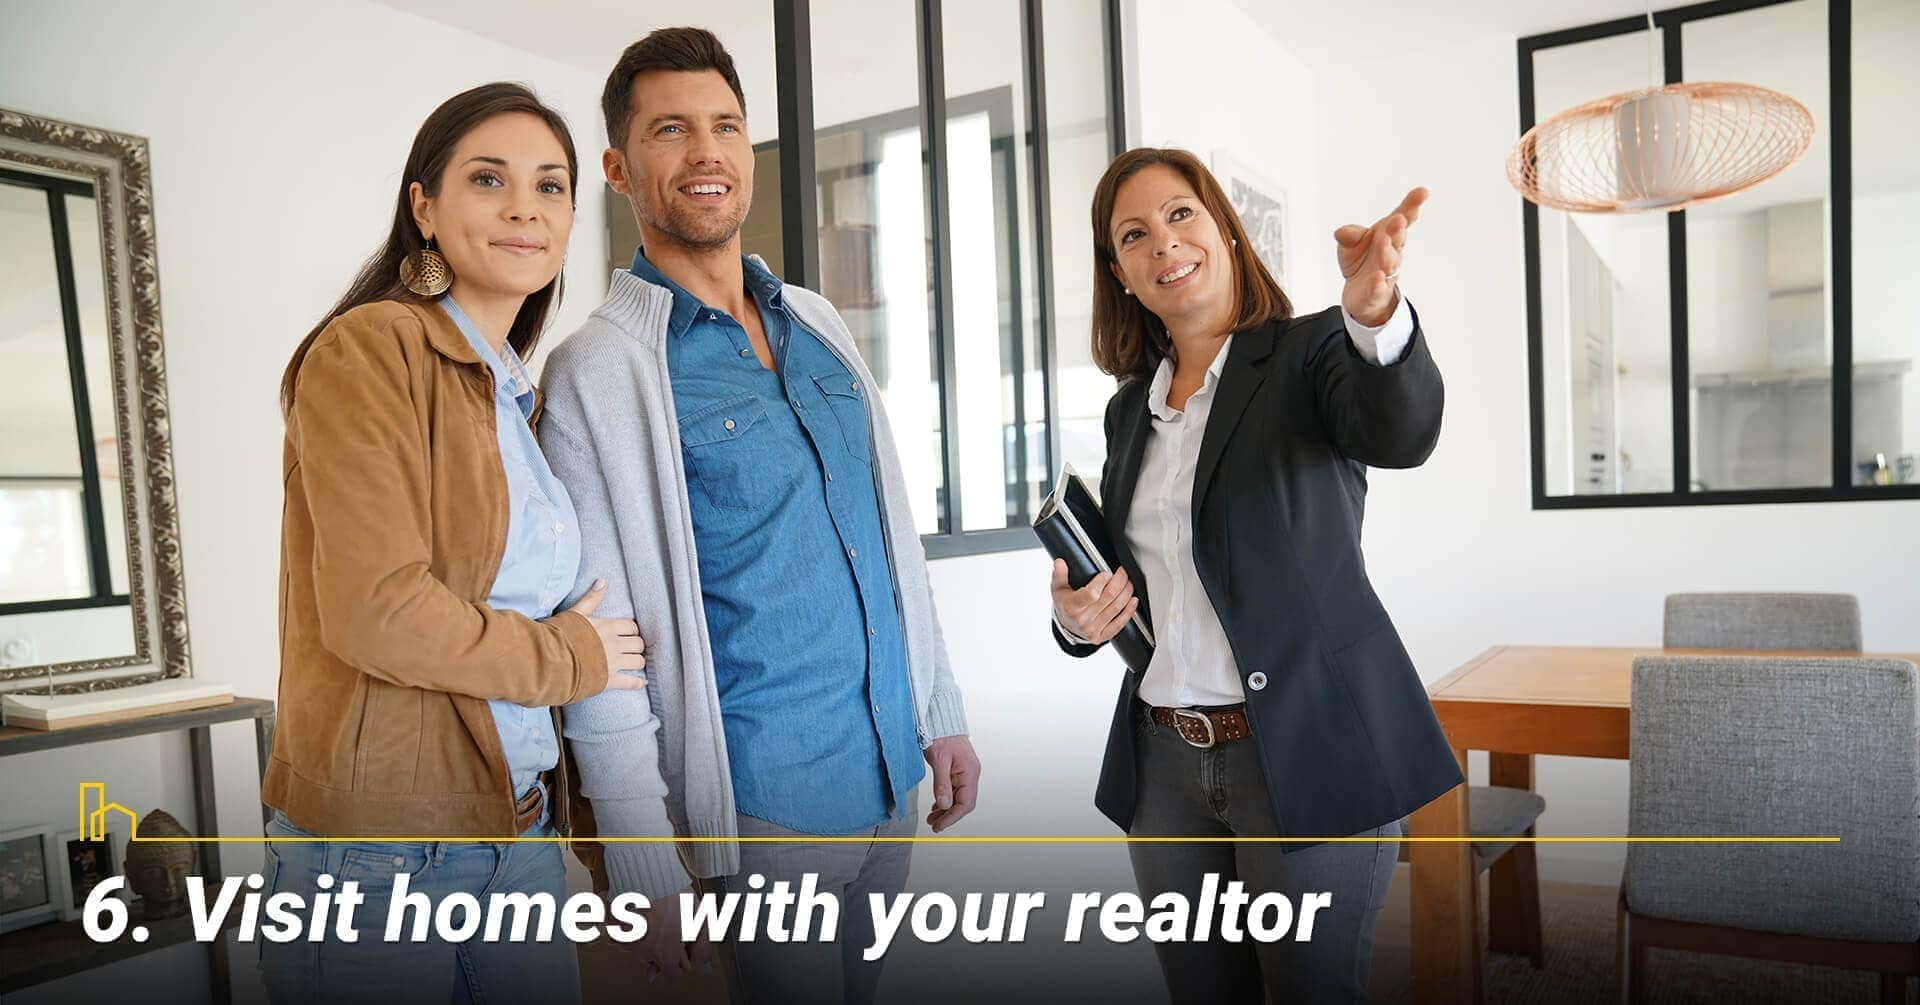 Visit homes with your realtor